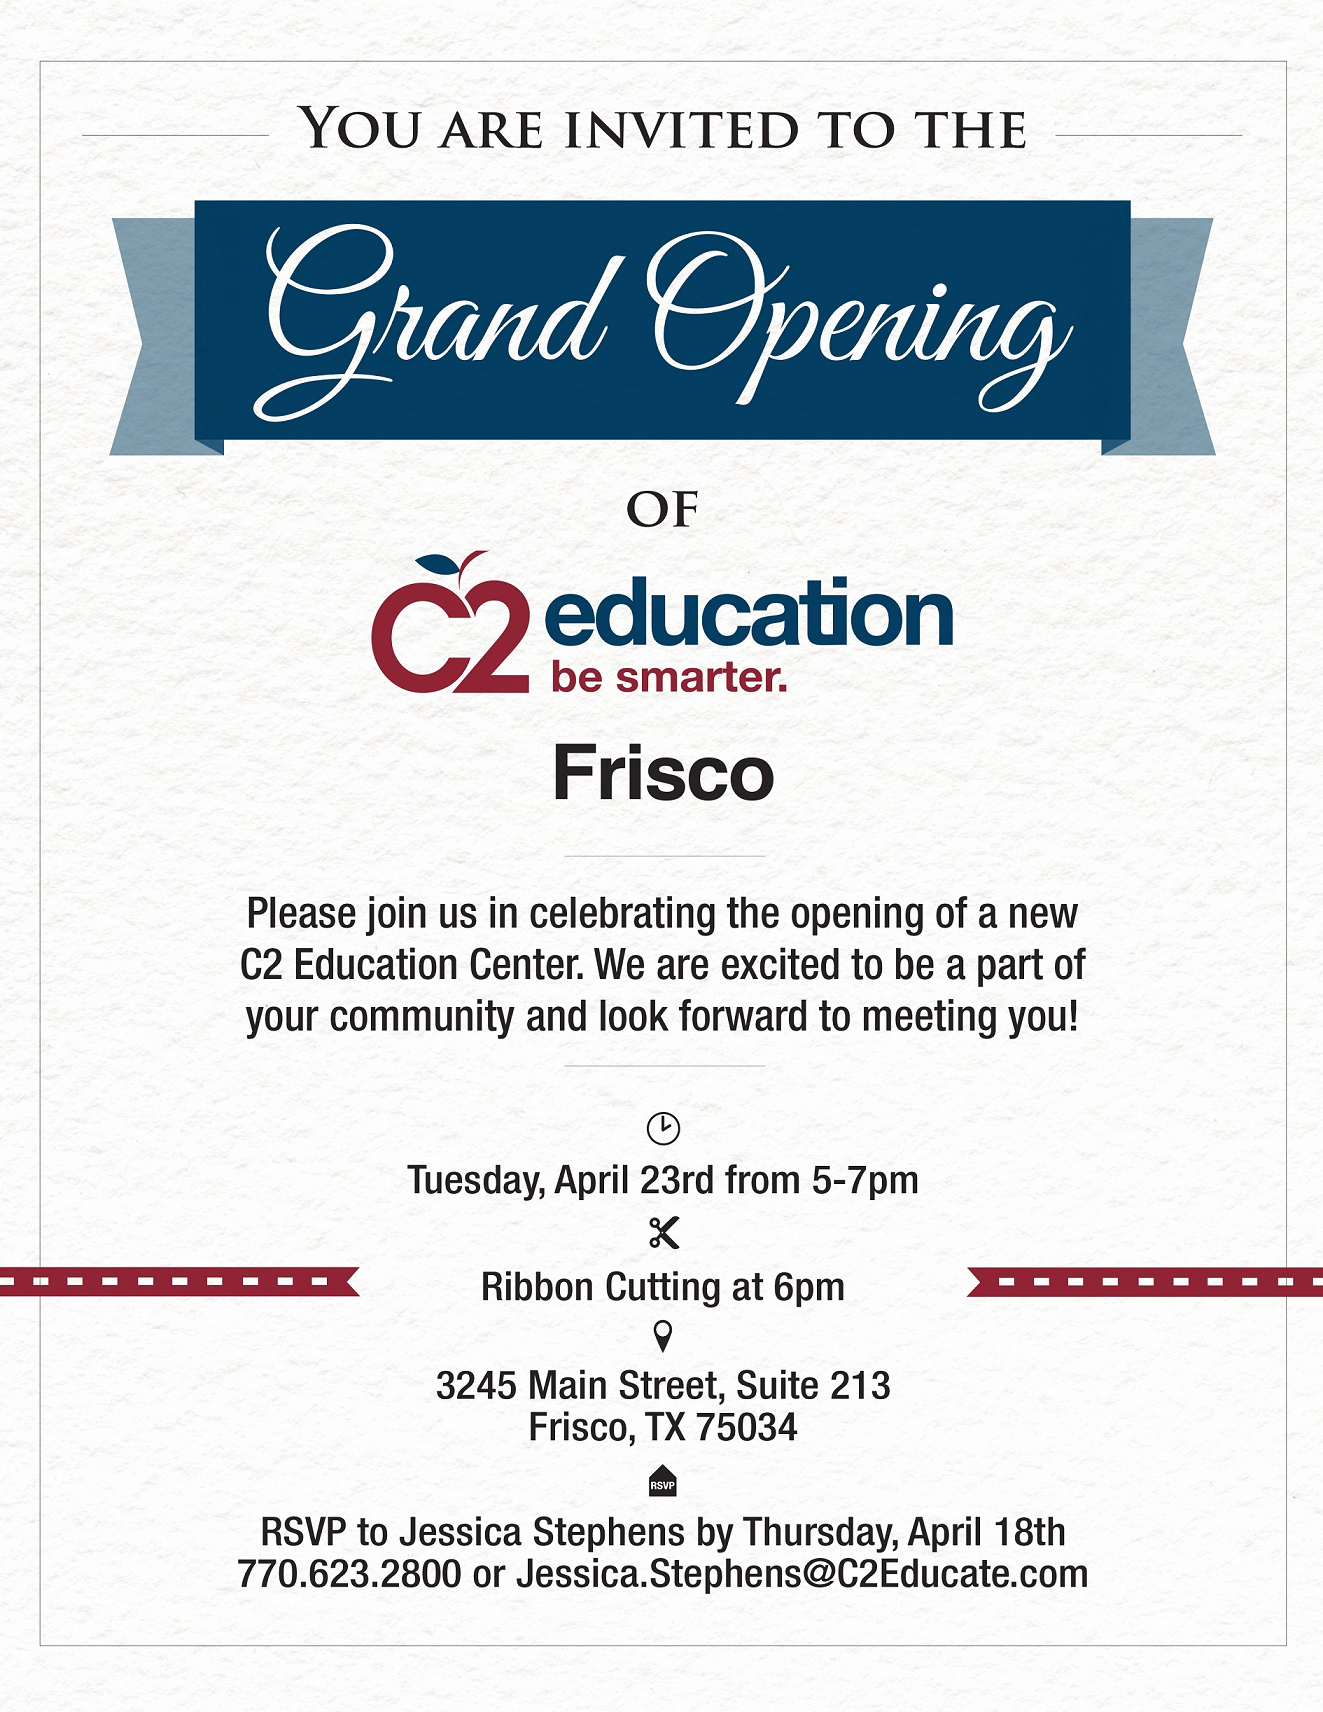 Grand Opening Invitation Wording Luxury C2 Education Announces Grand Opening In Dallas area